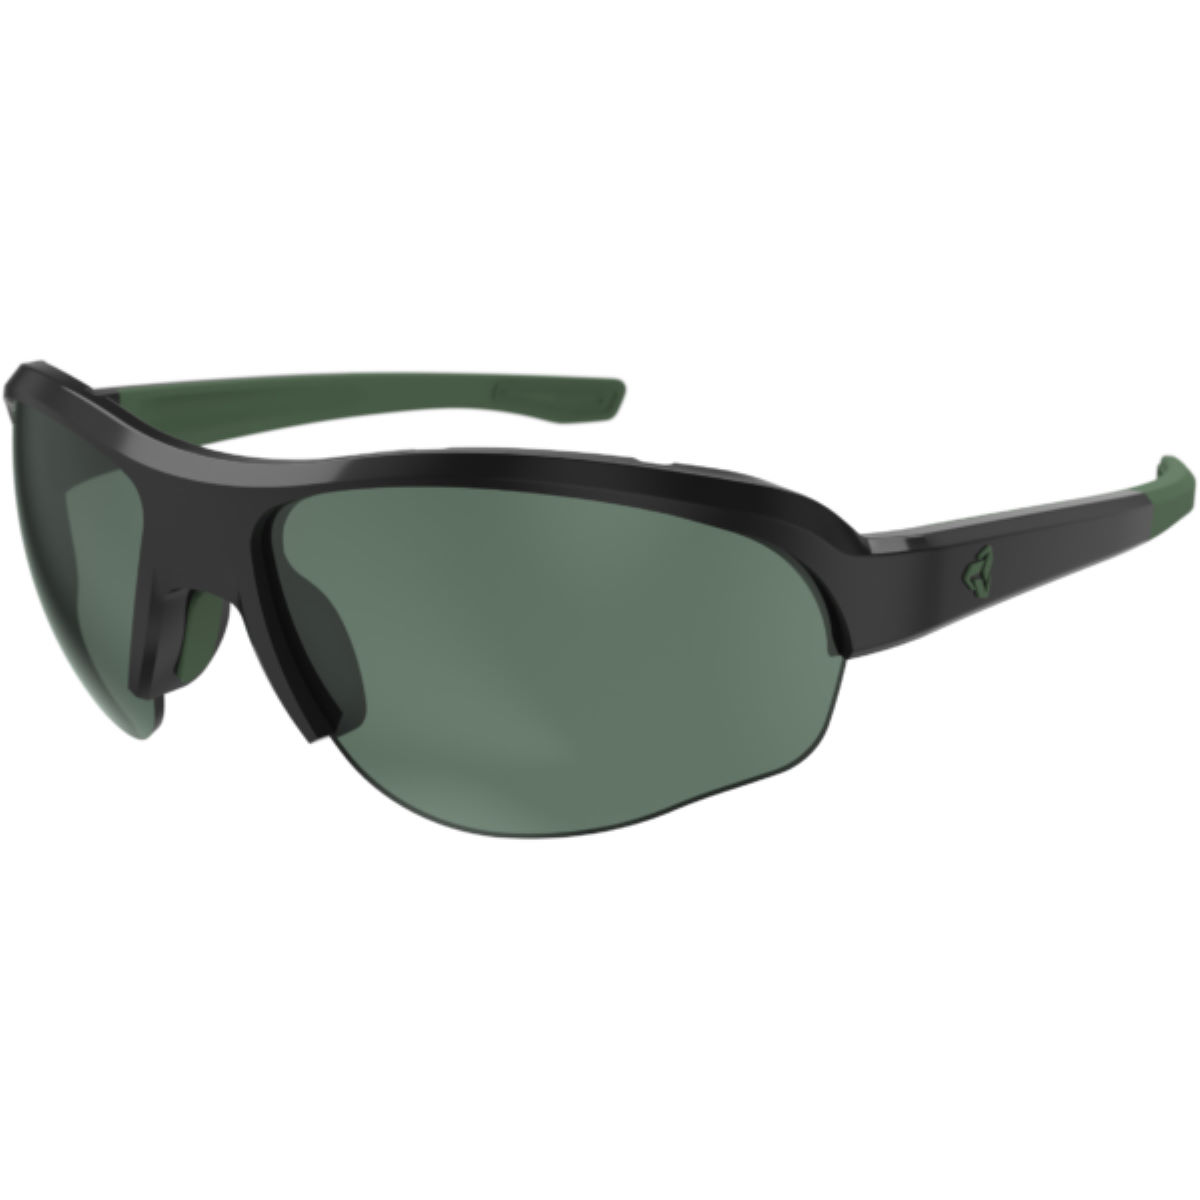 Ryders Eyewear Flume Velo Polar Anti-Fog Sunglasses - Black/Green   Sunglasses